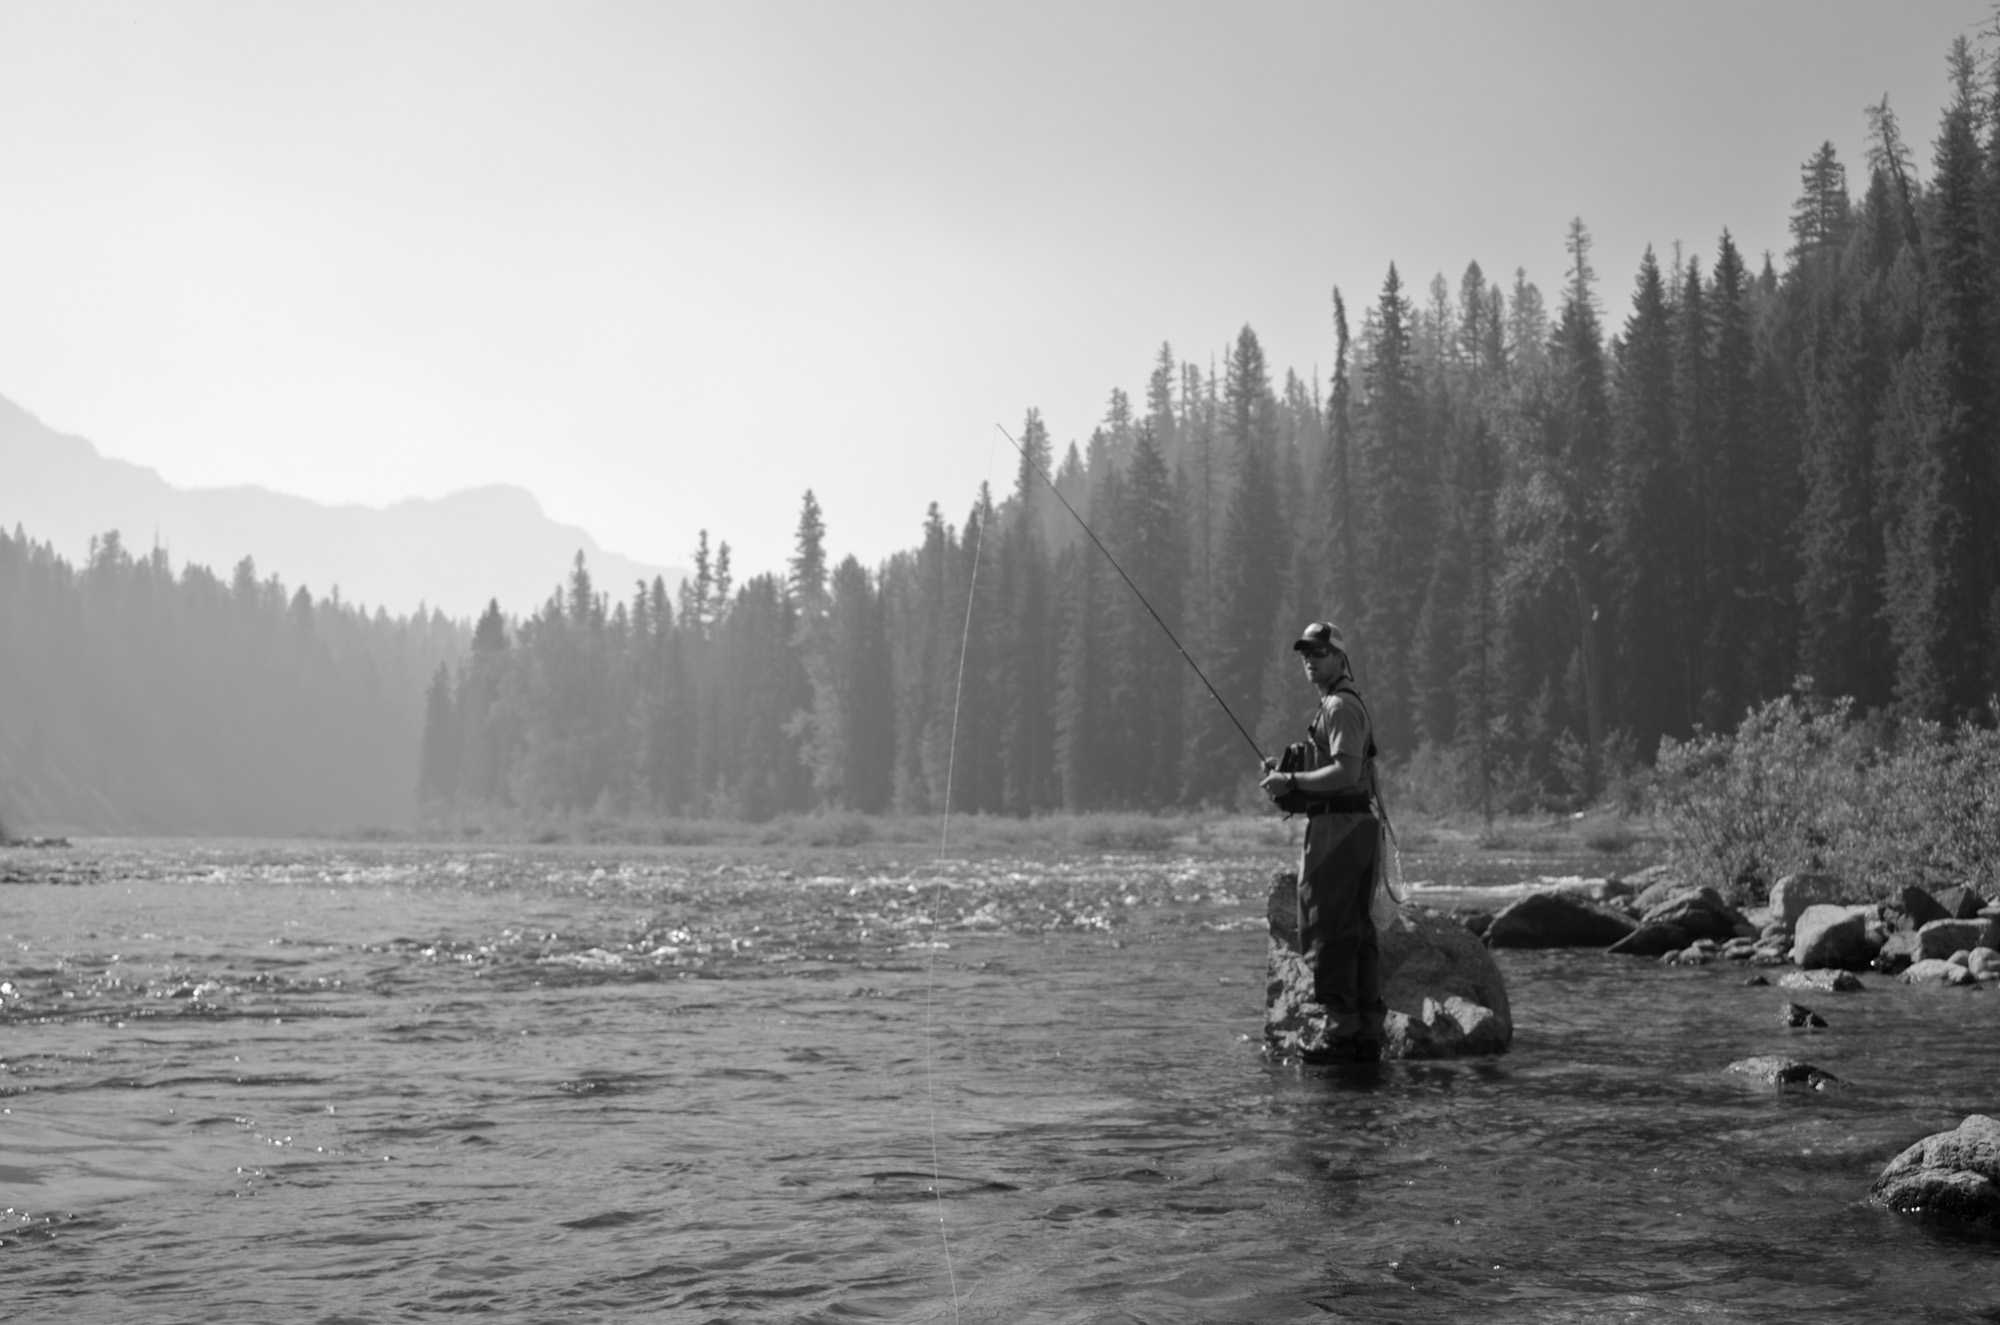 fly fishing montana, montana, fly fishing, fly fishing missoula, missoula, bob marshall wilderness, native cutthroat, trout